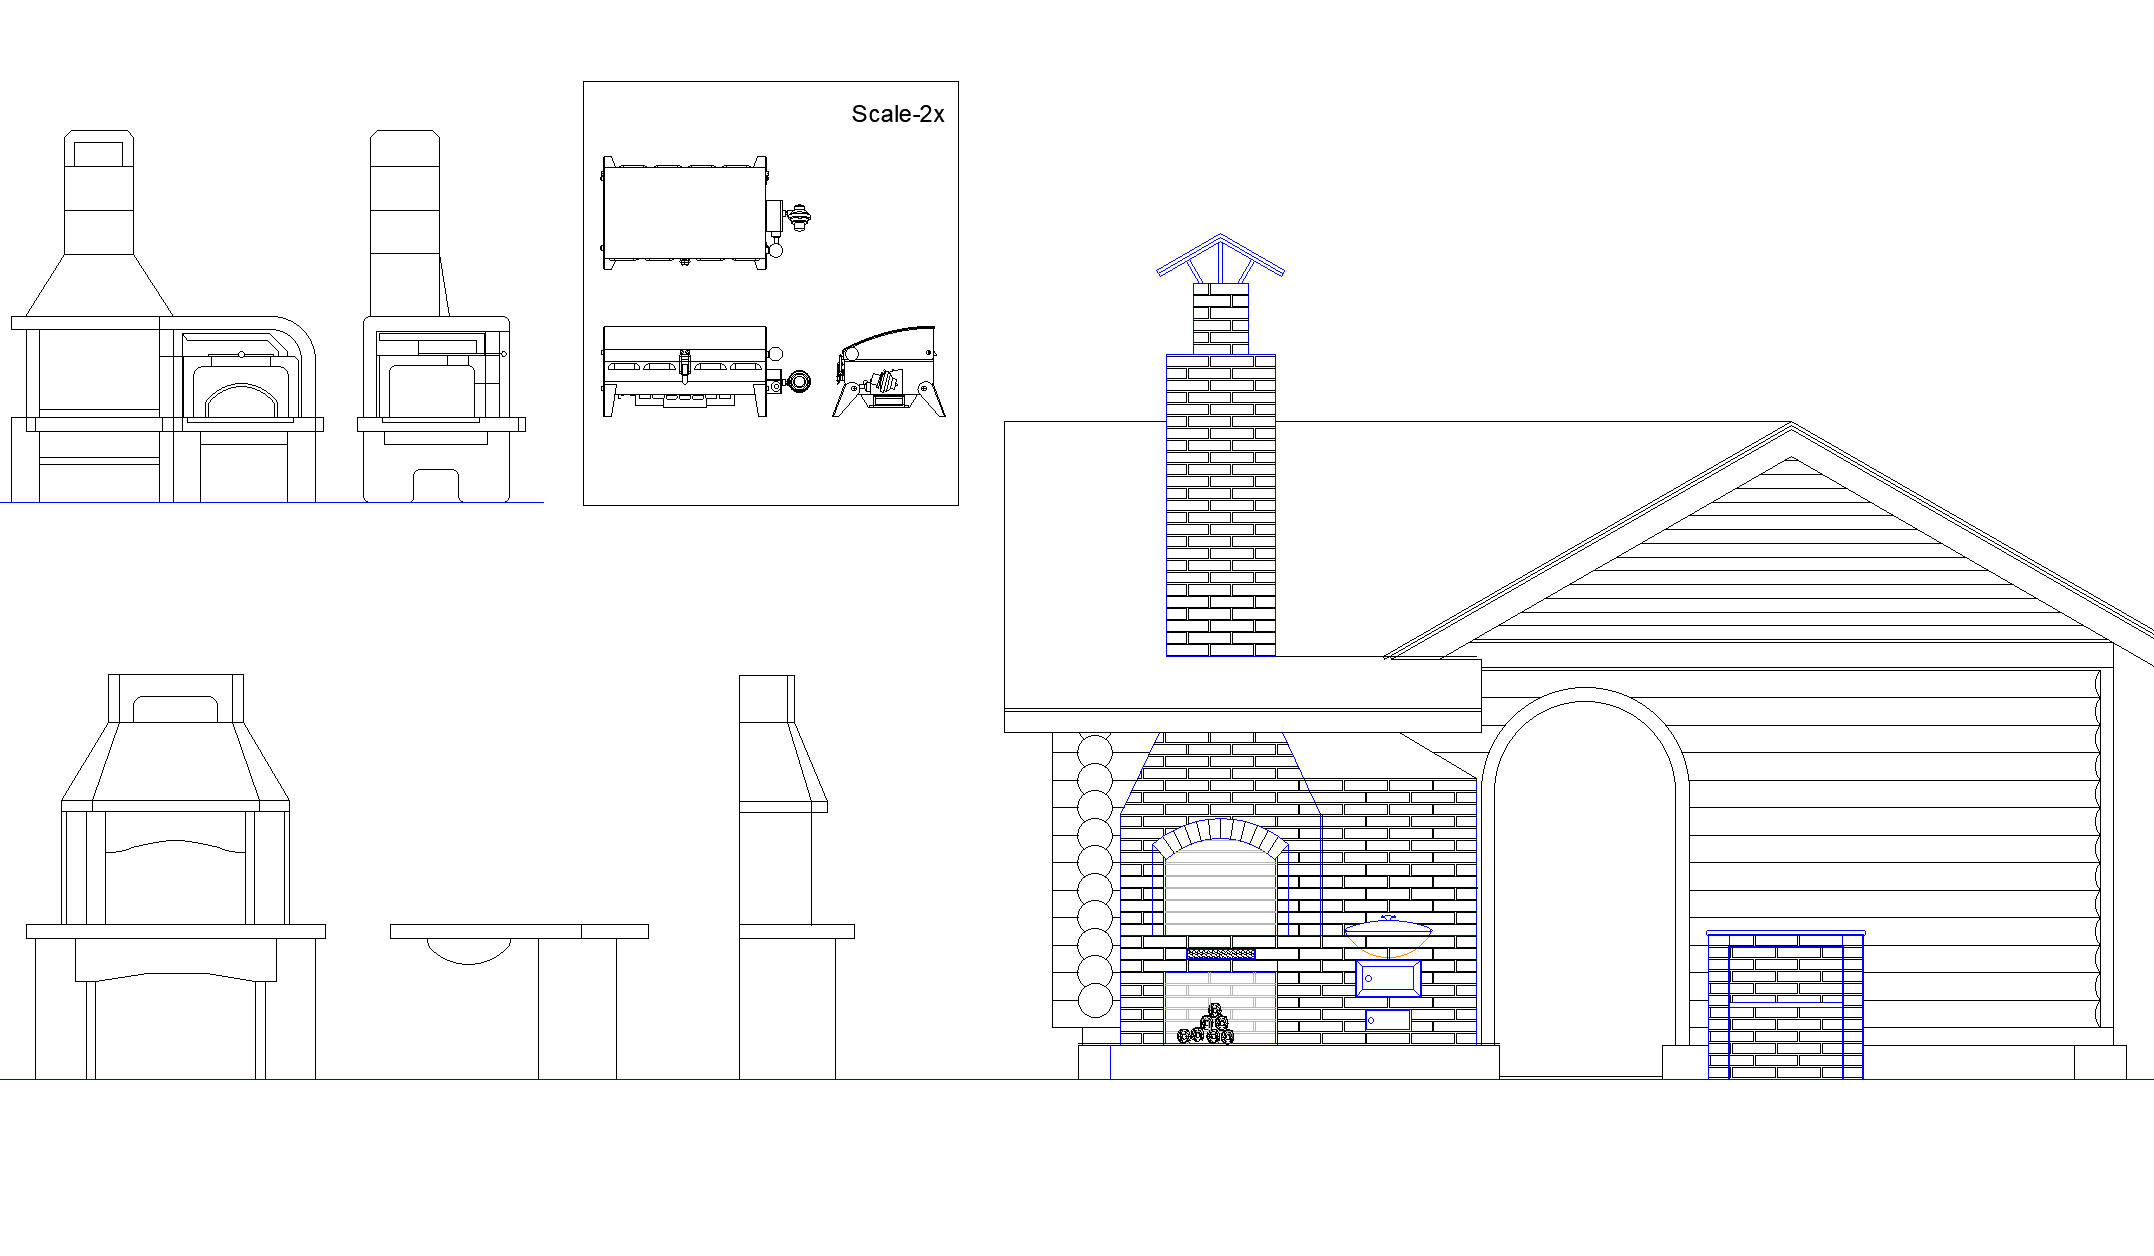 Plan of detailed barbecue detail dwg file.